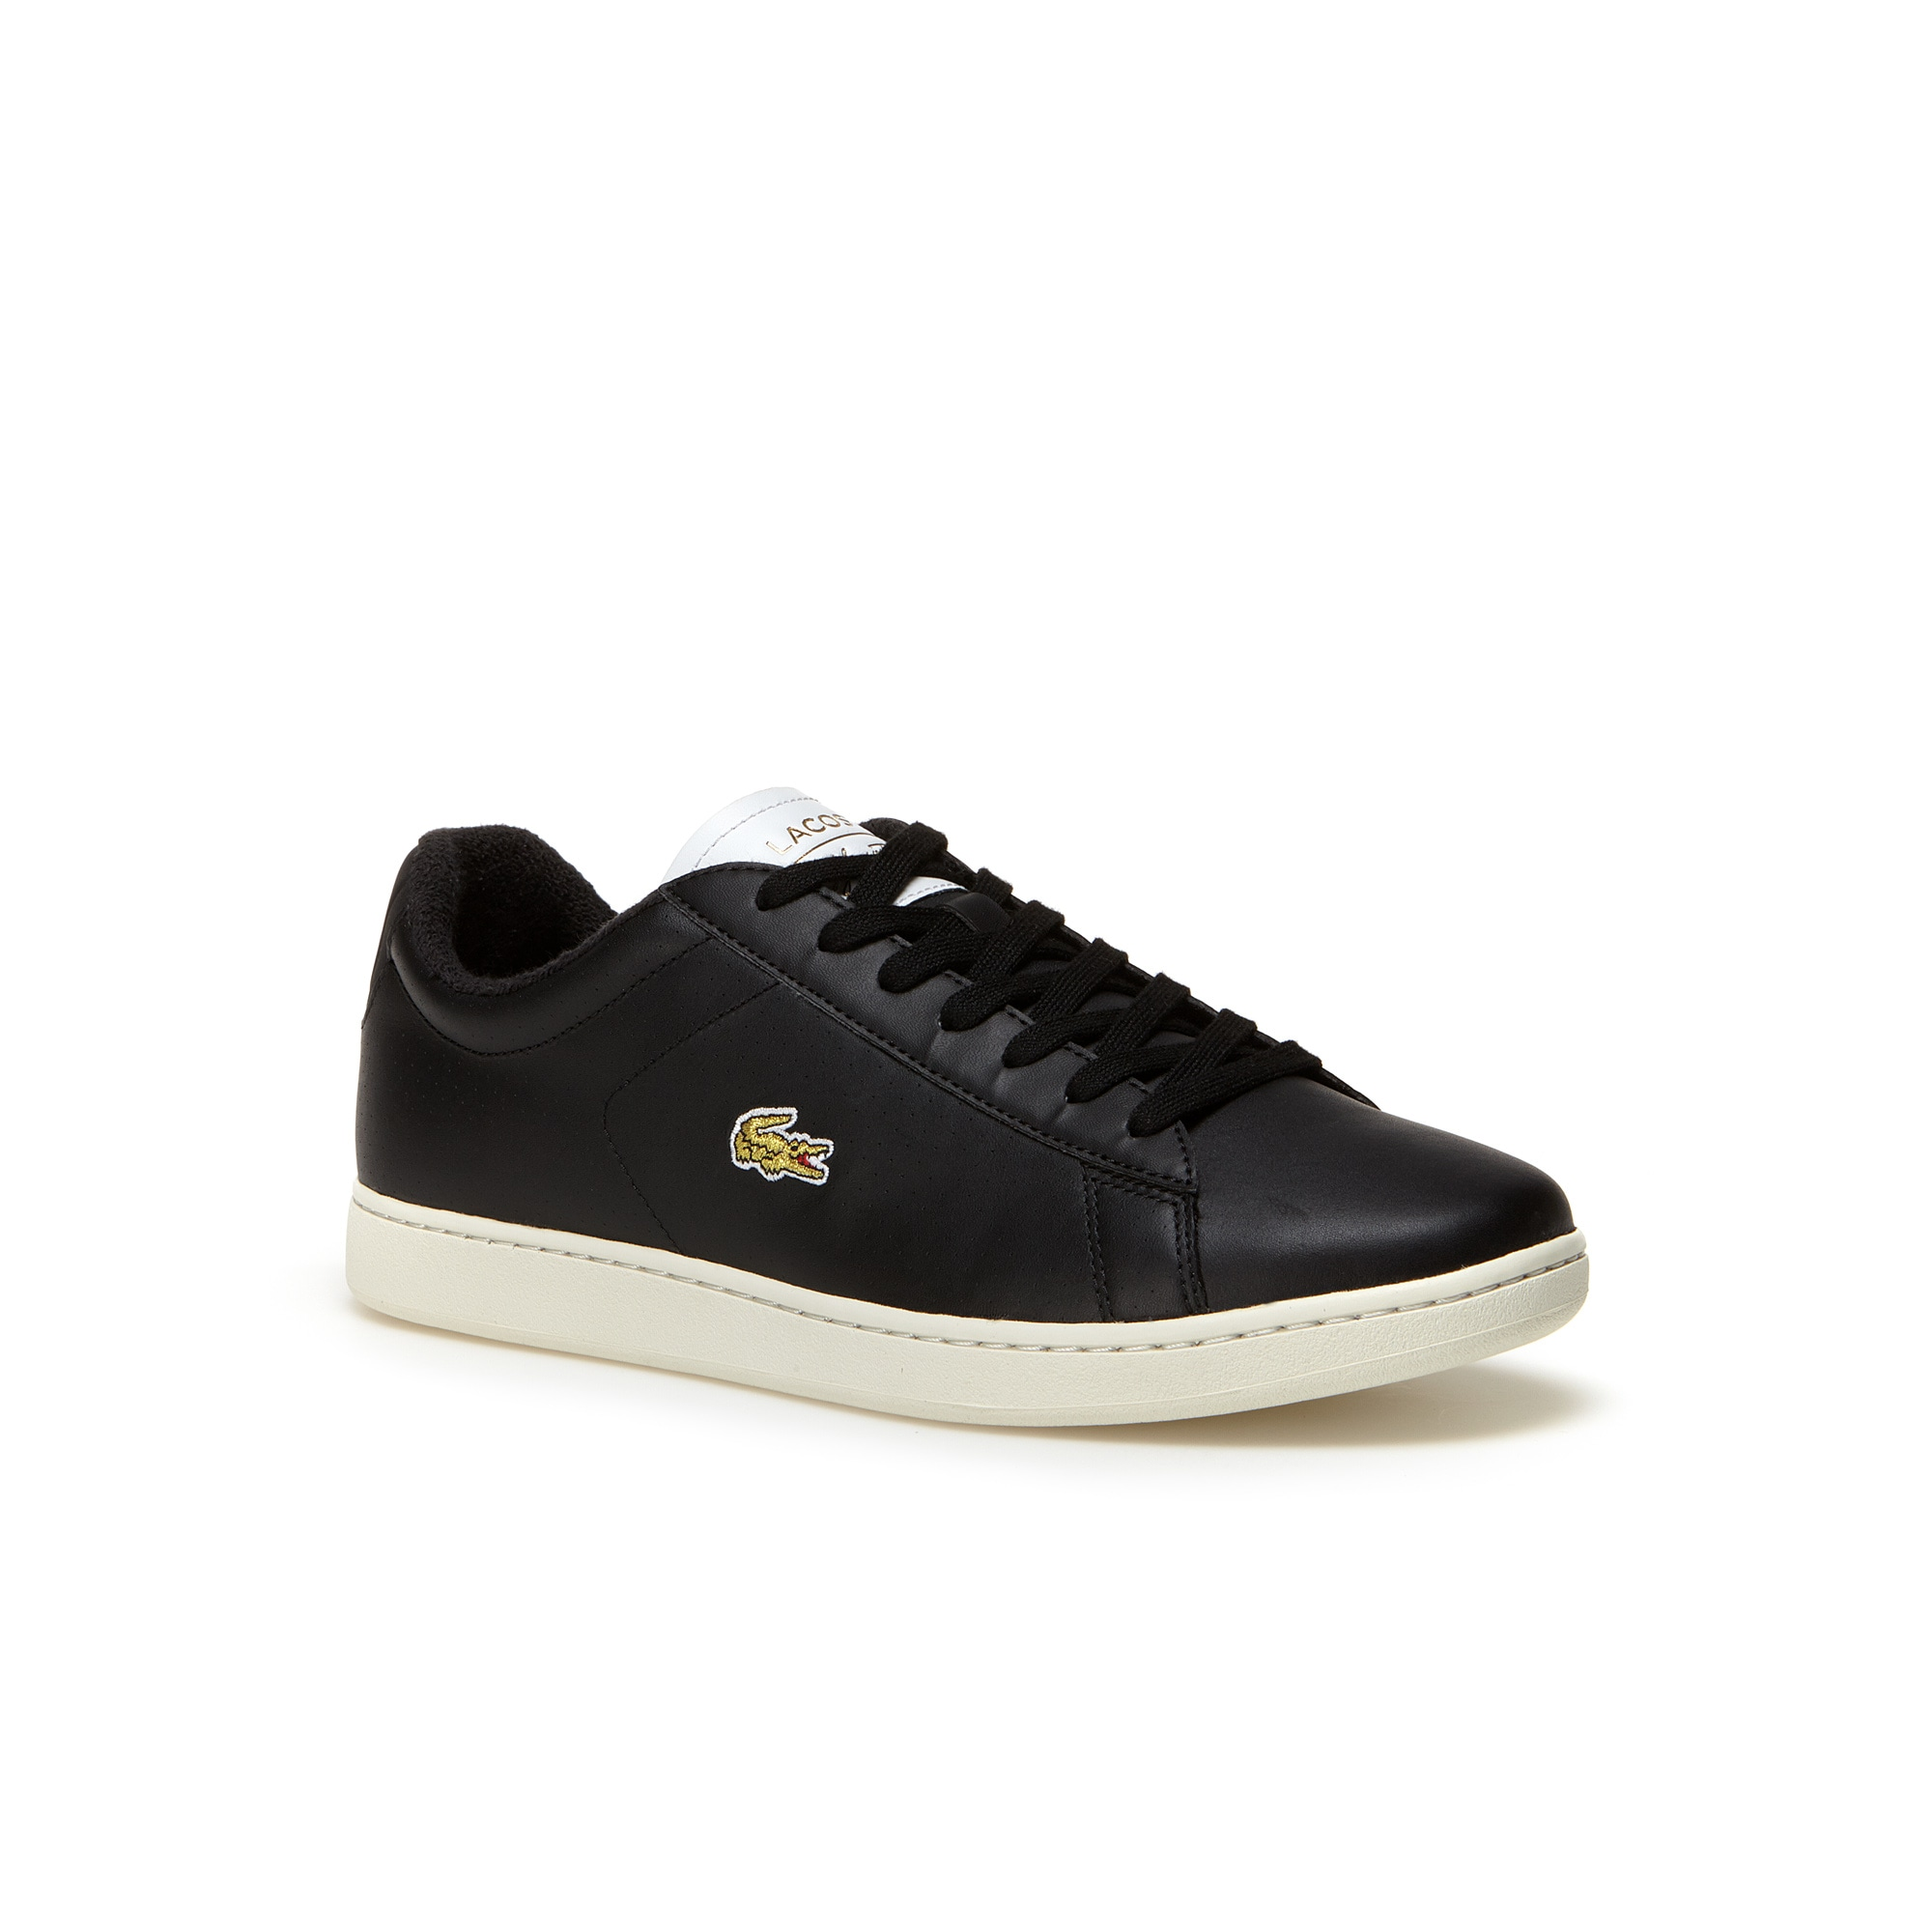 Lacoste Sneakers Carnaby Evo Black Leather